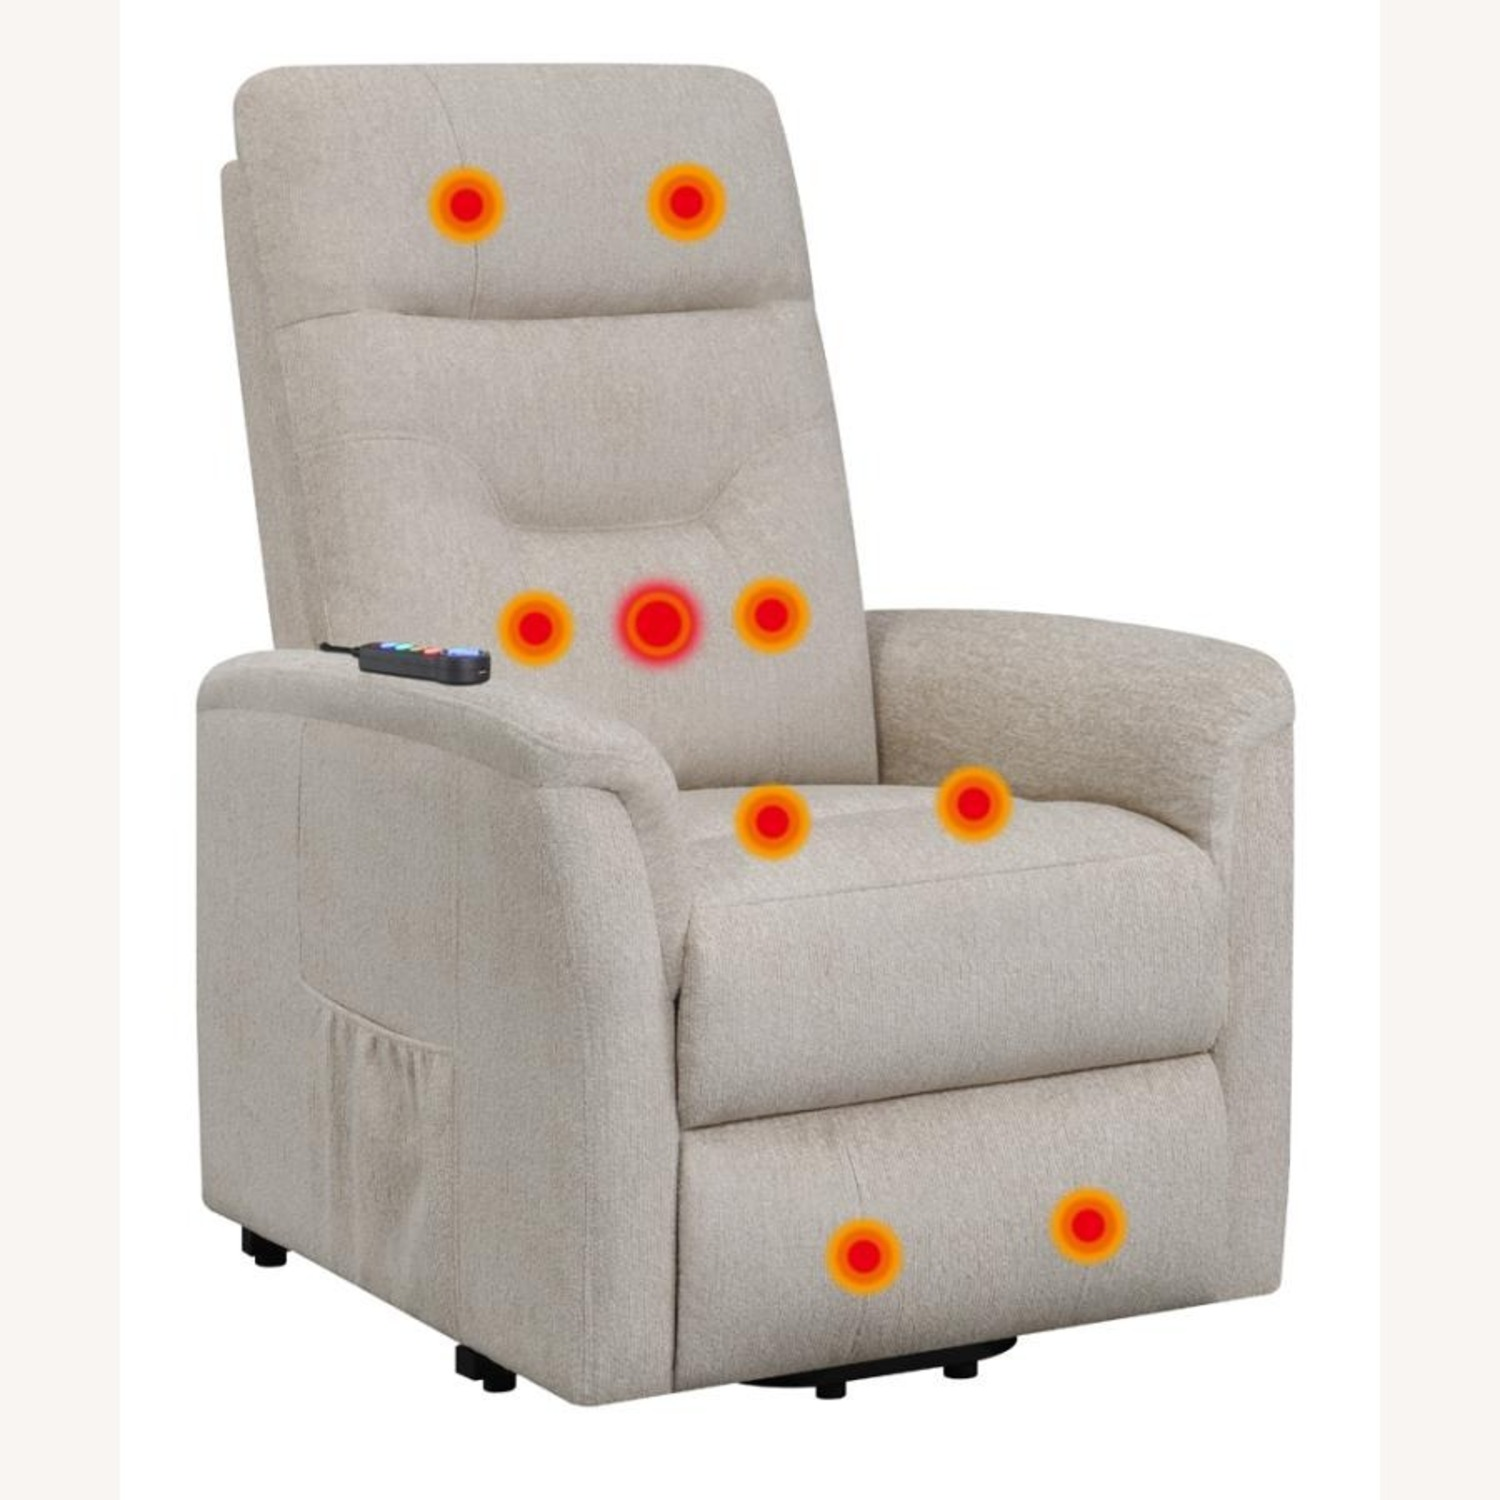 Power Lift Massage Chair In Beige Fabric - image-2